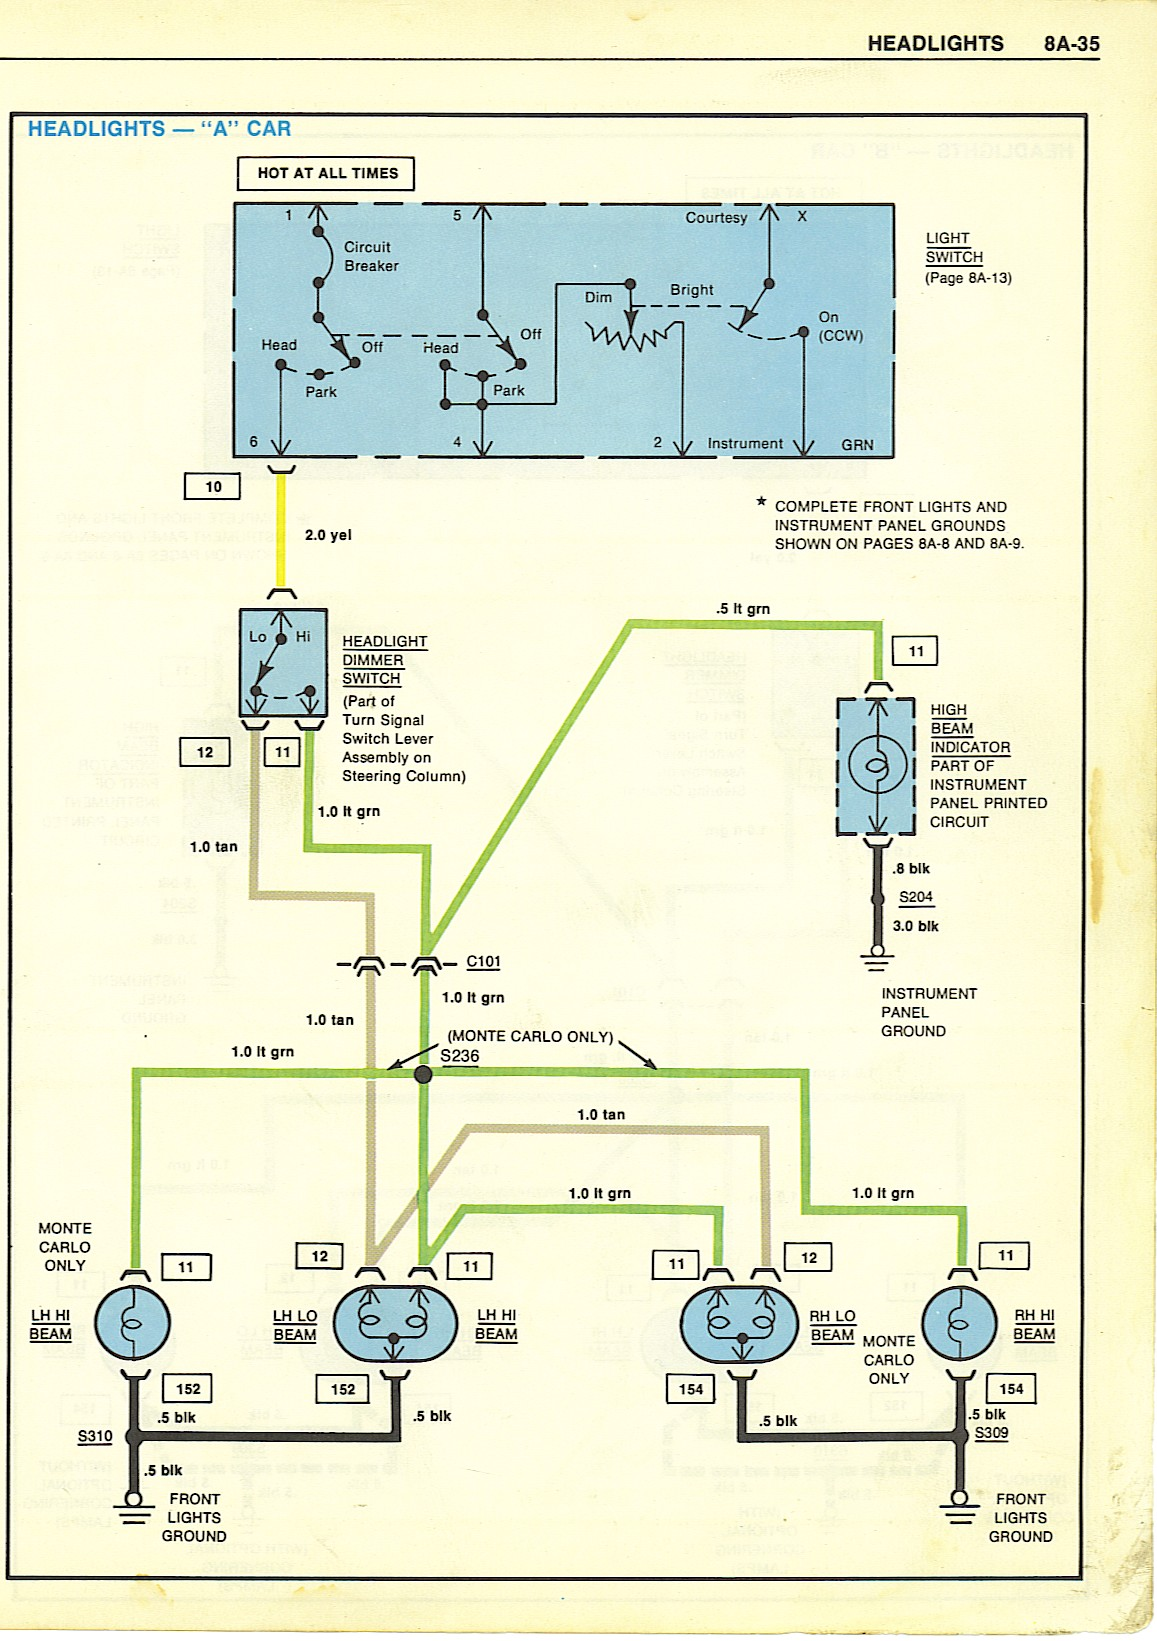 1981 Corvette Headlight Wiring Diagram - Wiring Diagram Text cream-post -  cream-post.albergoristorantecanzo.it | 1981 Corvette Headlight Wiring Diagram |  | cream-post.albergoristorantecanzo.it